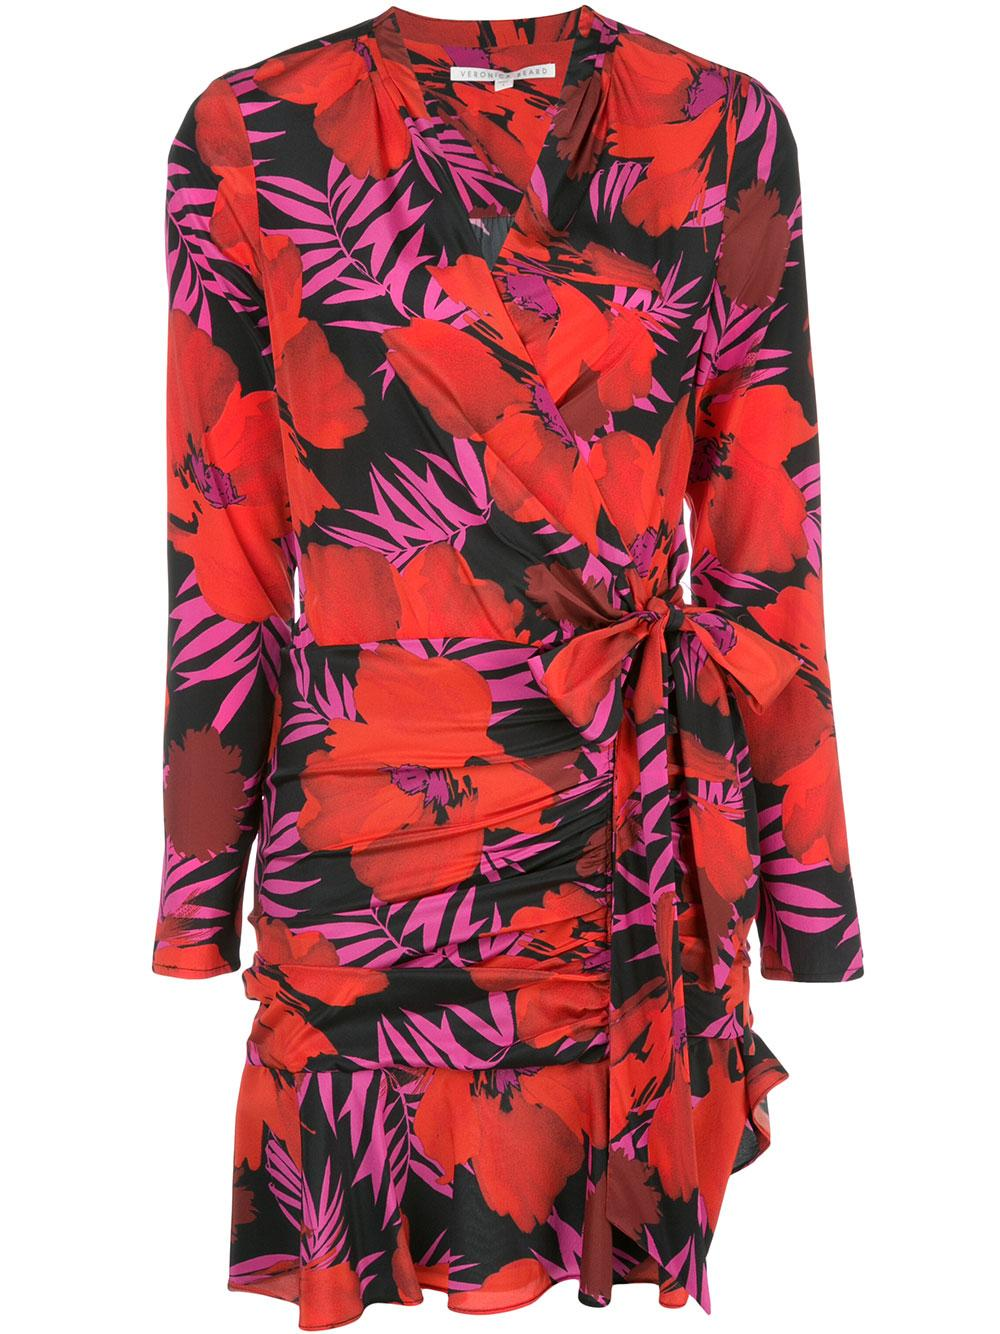 Lorina Long Sleeve Palm Print Dress Item # 1910SDC032745